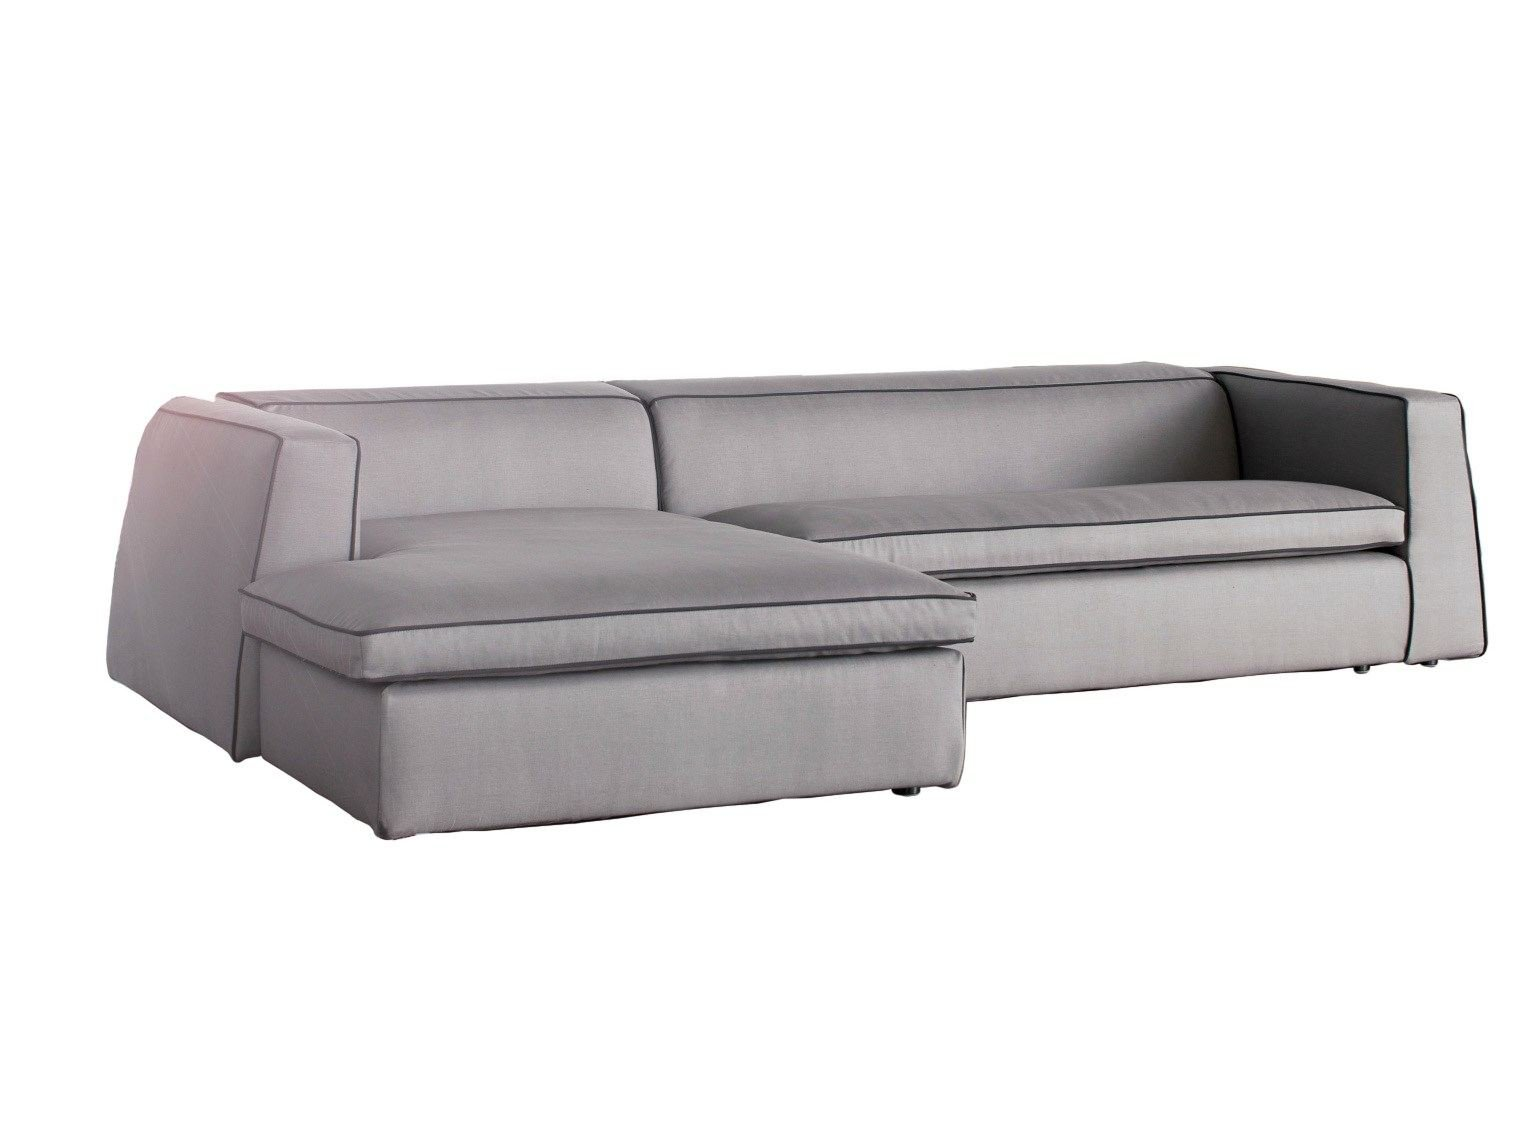 good mood sofa with chaise longue by bonaldo design. Black Bedroom Furniture Sets. Home Design Ideas